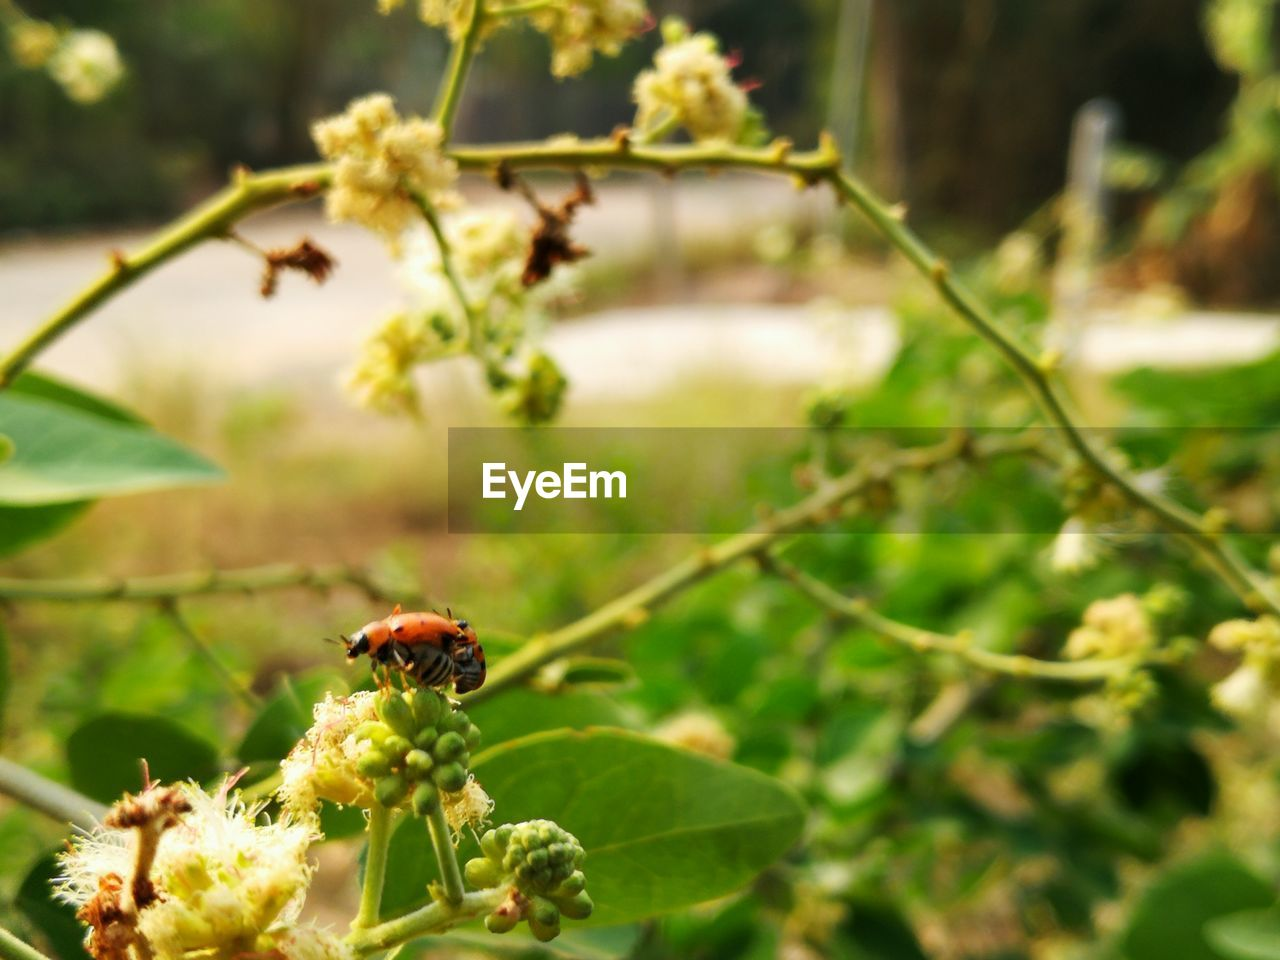 invertebrate, insect, animal themes, animal, plant, animals in the wild, animal wildlife, one animal, beauty in nature, flower, close-up, flowering plant, growth, nature, focus on foreground, freshness, day, no people, leaf, plant part, outdoors, flower head, pollination